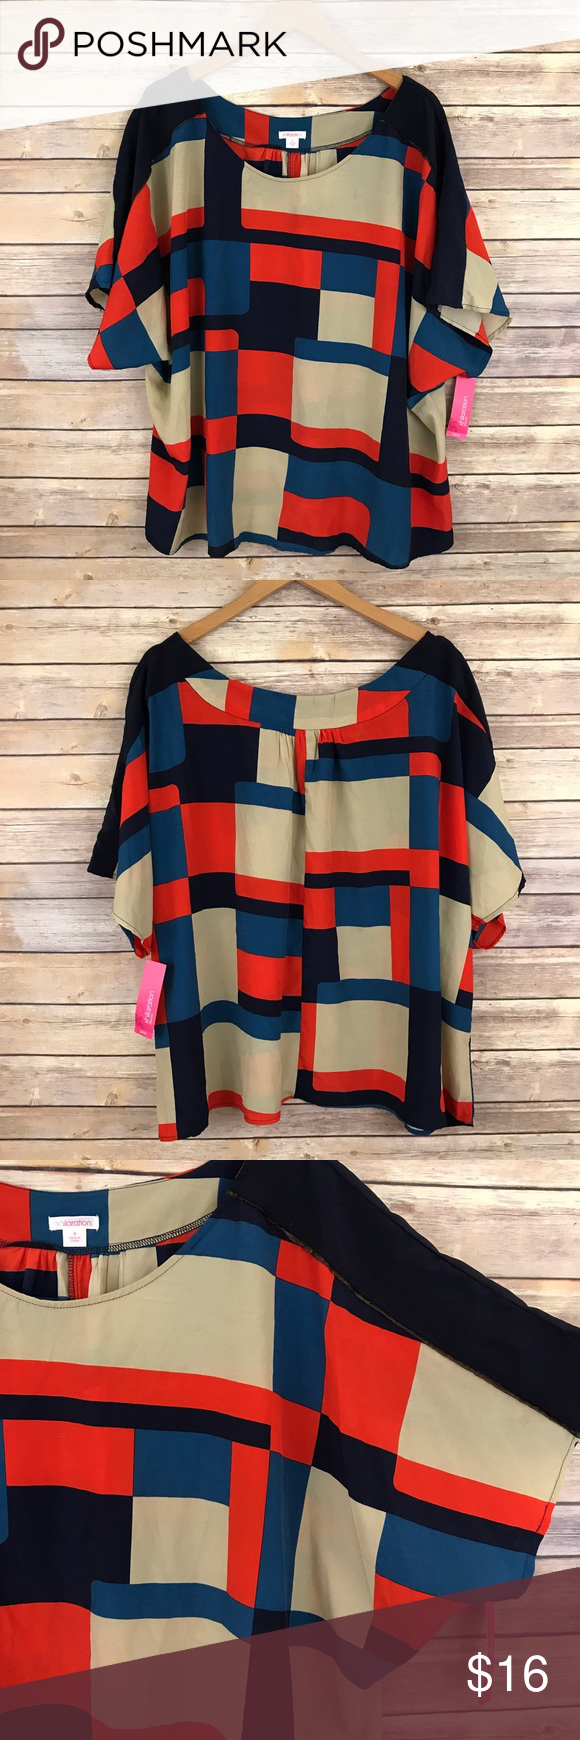 NWT Xhilaration Colorful Square Print Top 4X J1 Condition: No Rips; No Stains  📦Orders are shipped within 24hrs! {Except weekends}📦  🚫No Trades🚫No Holds🚫 Xhilaration Tops Blouses